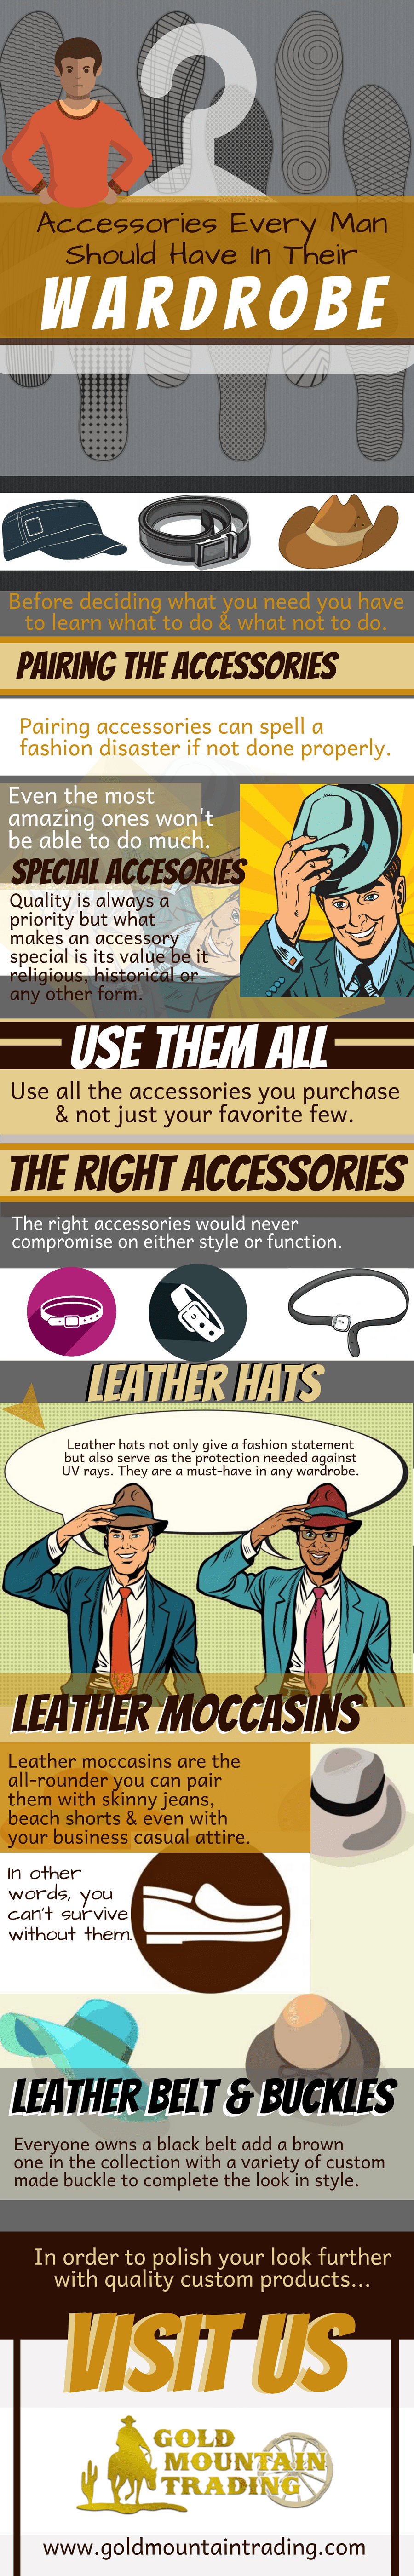 Accessories everyone should have